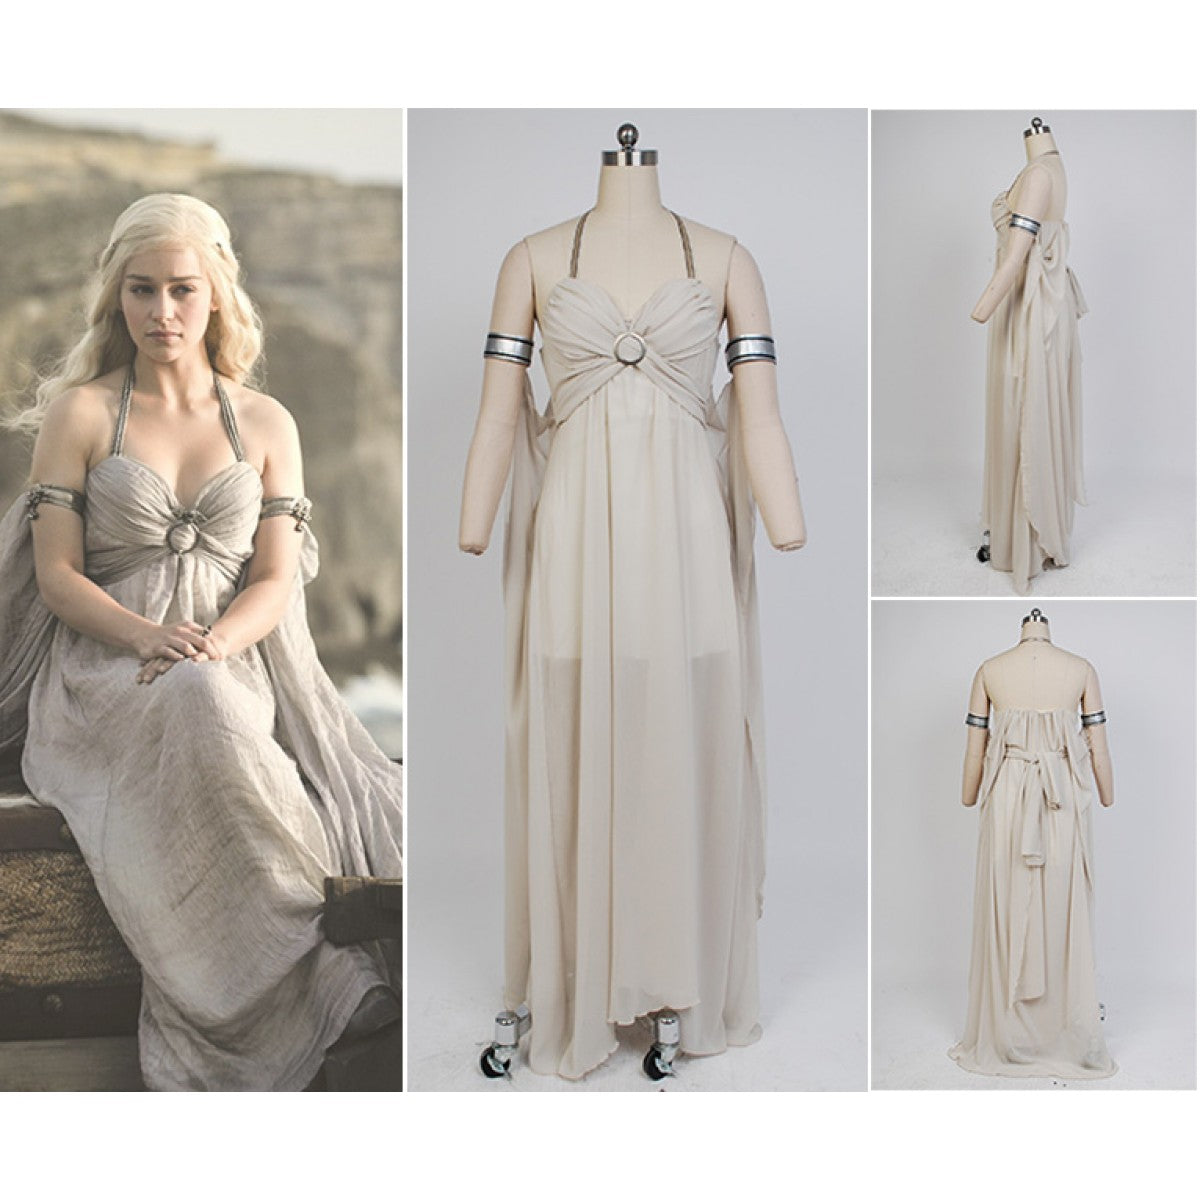 Daenerys Targaryen Mother of Dragons Costume from Game of Thrones